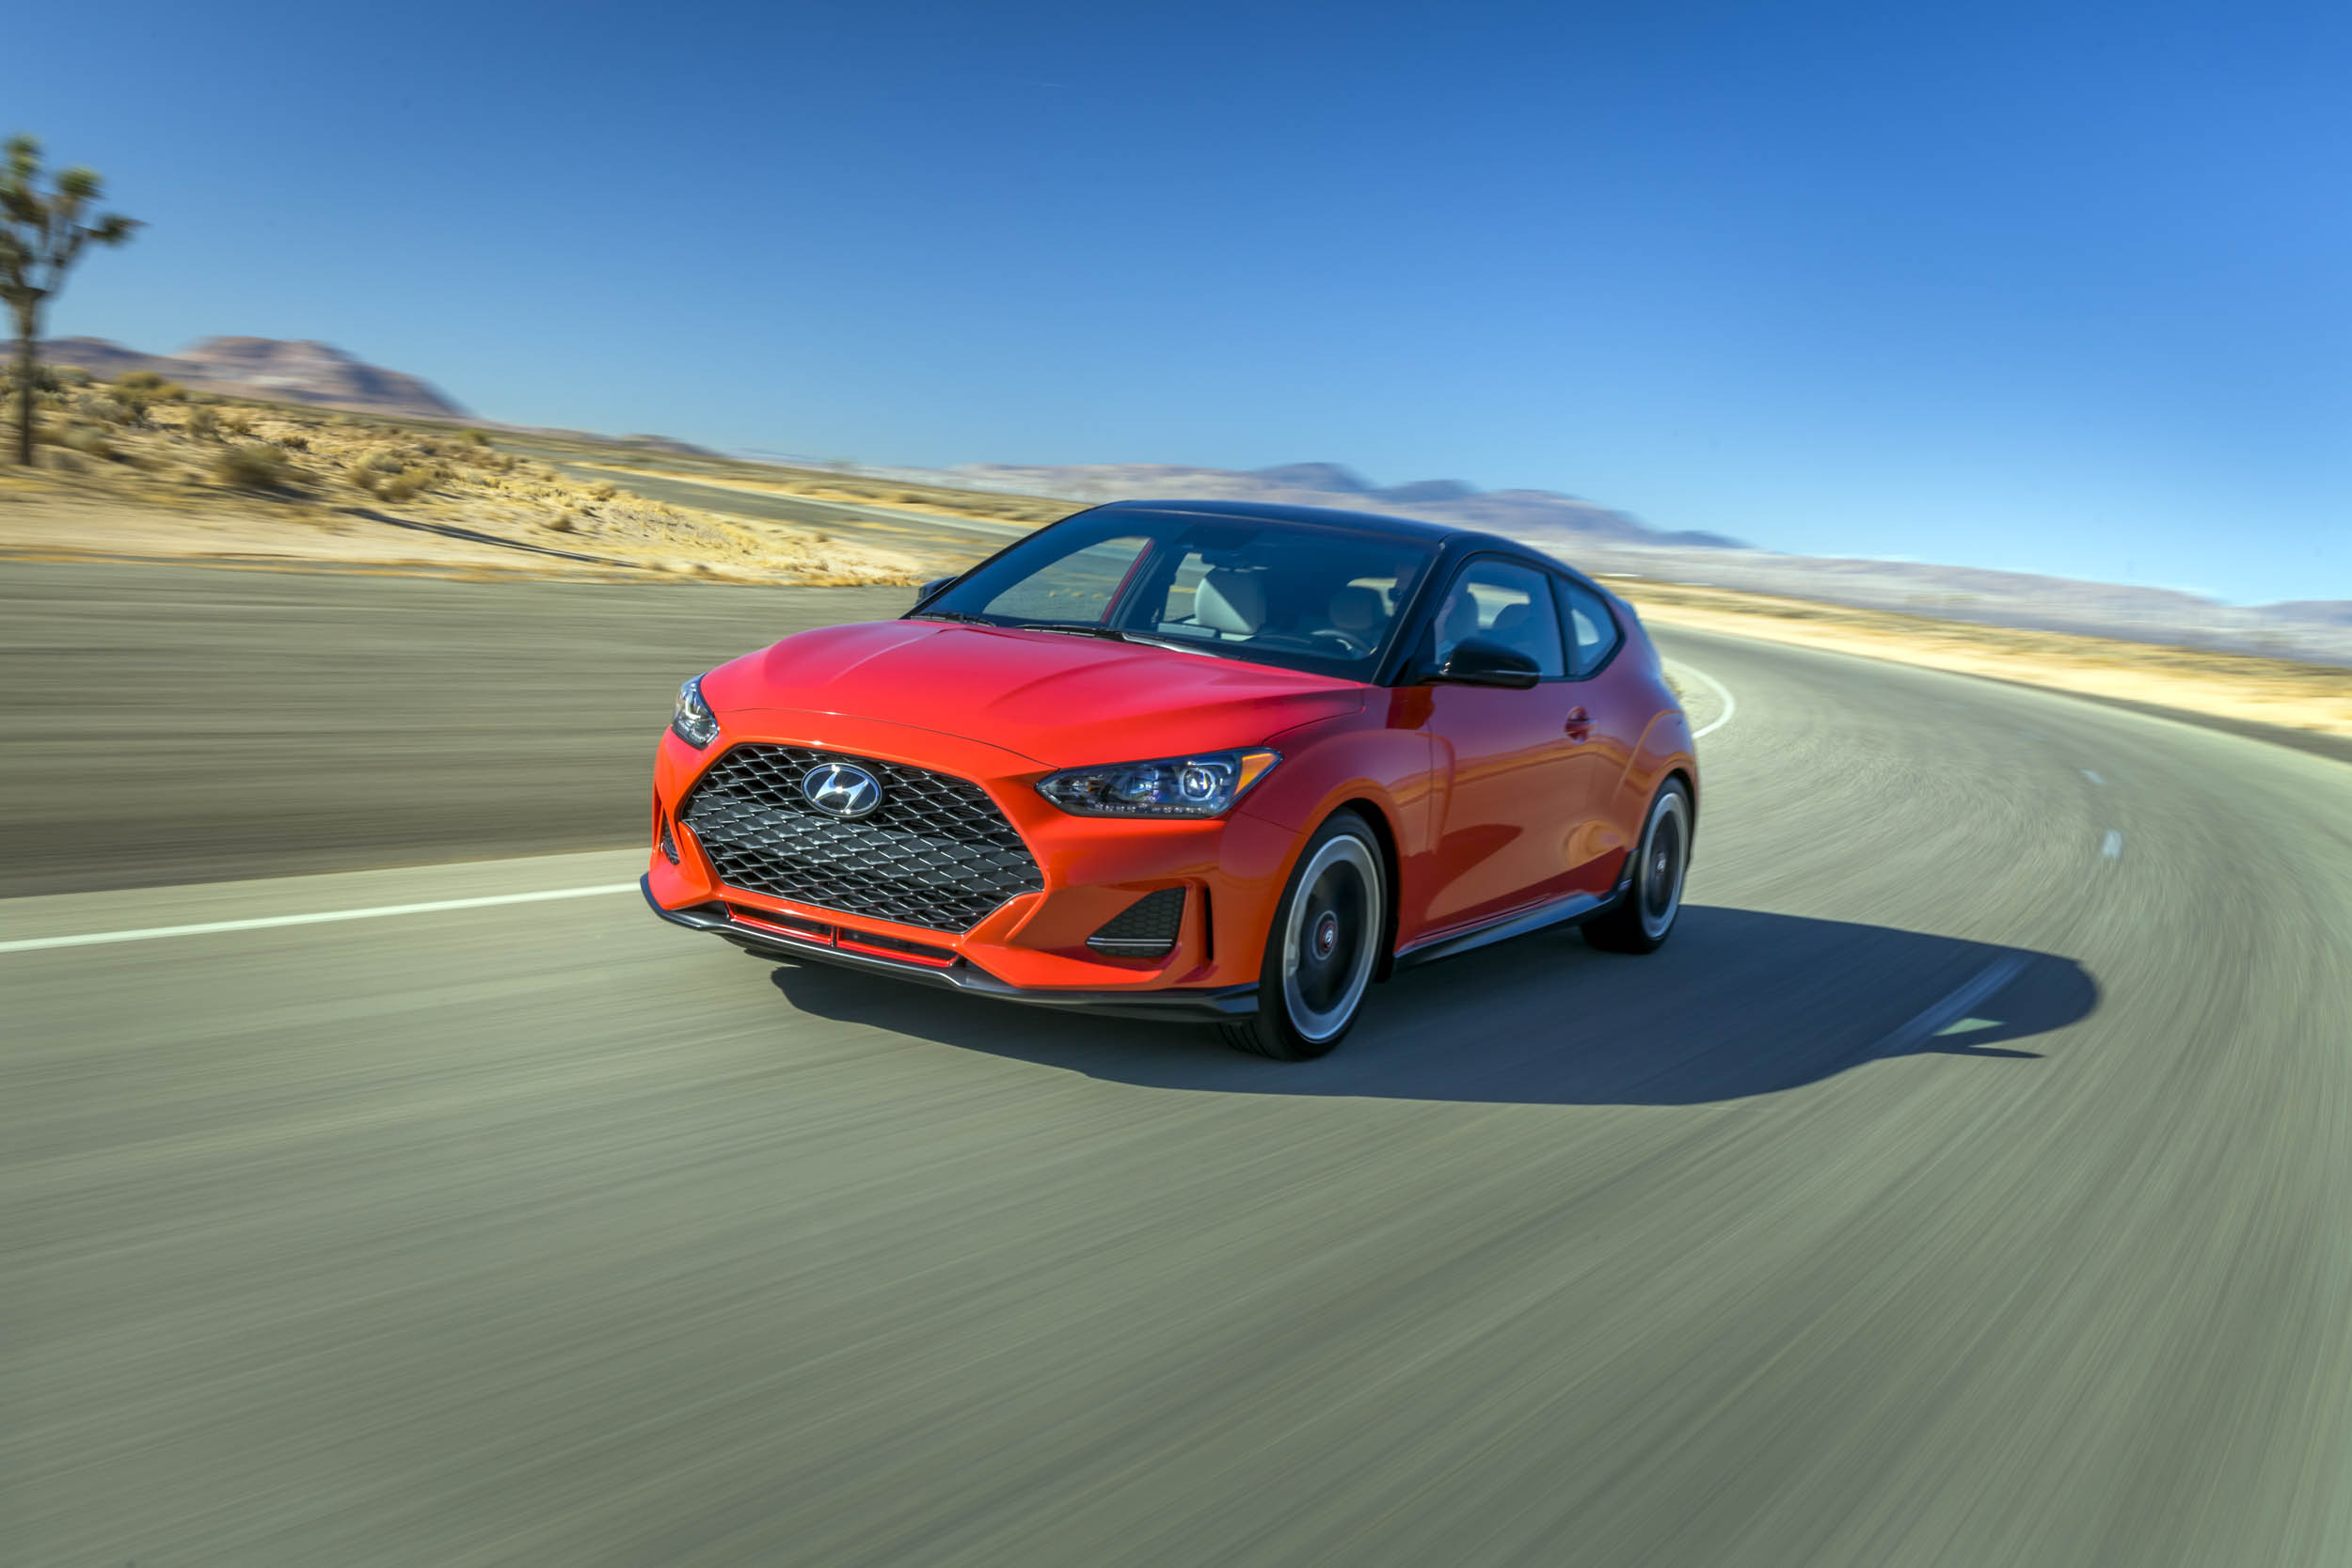 Red 2019 Hyundai Veloster front 3/4 on the road